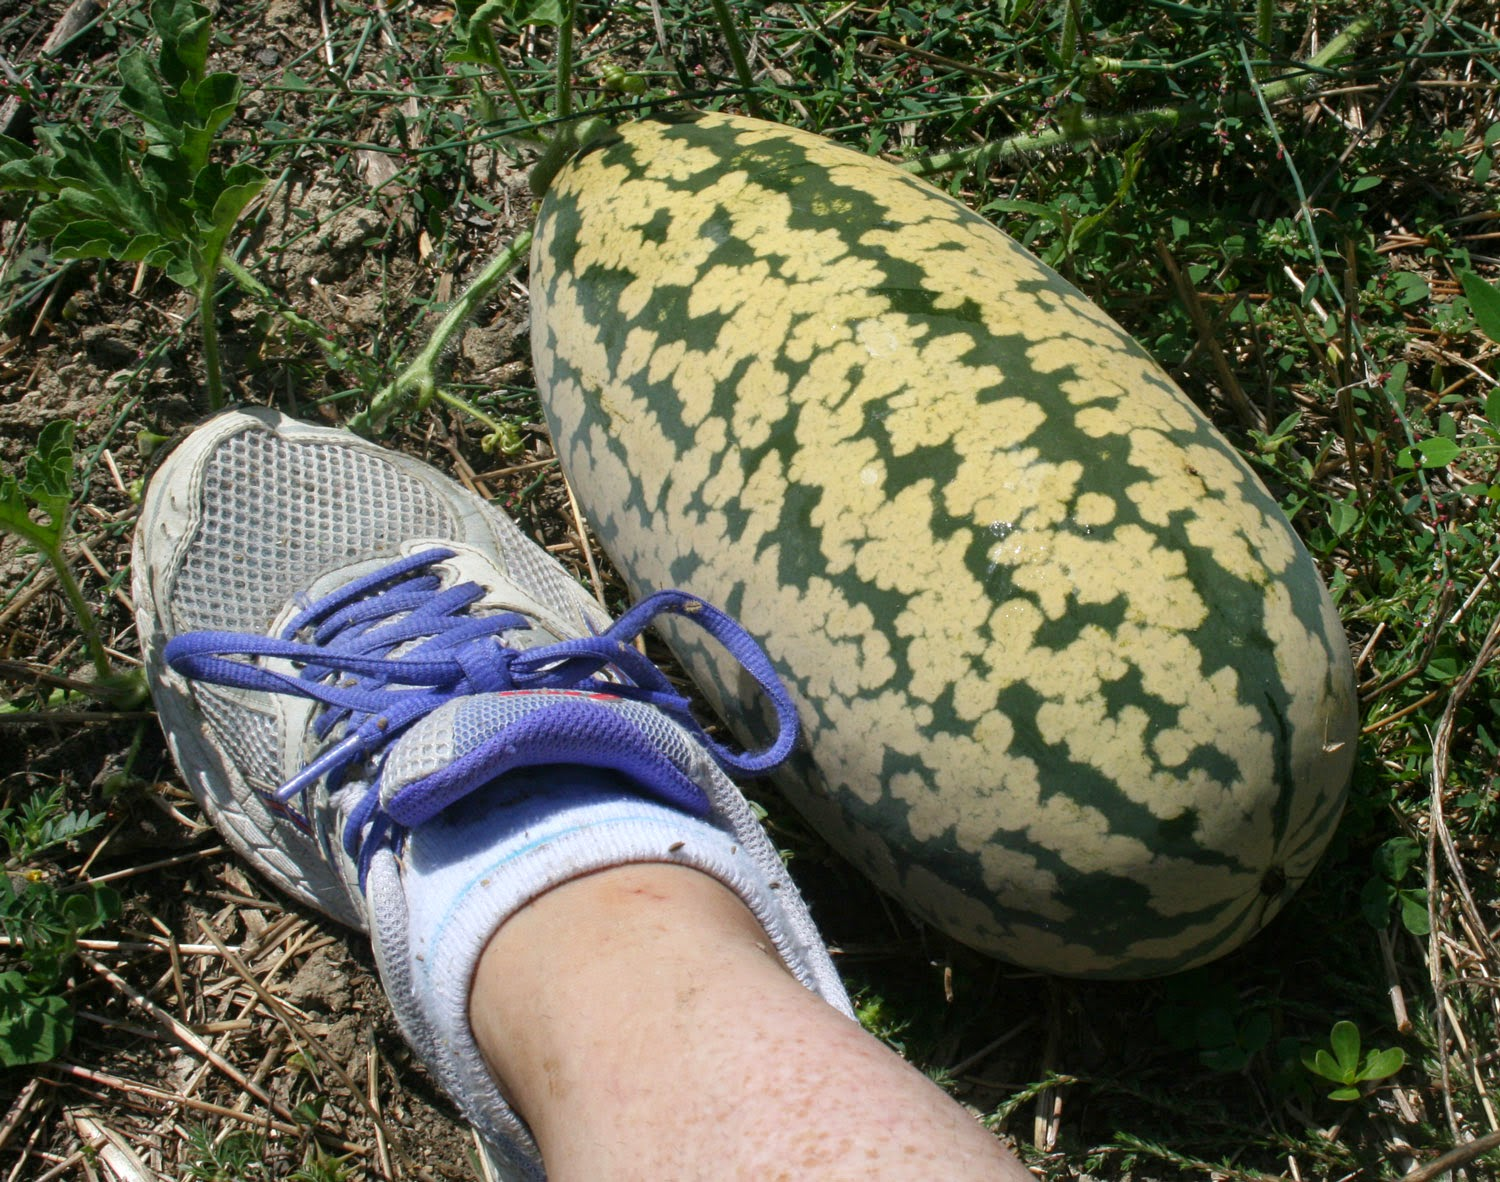 This melon is getting huge